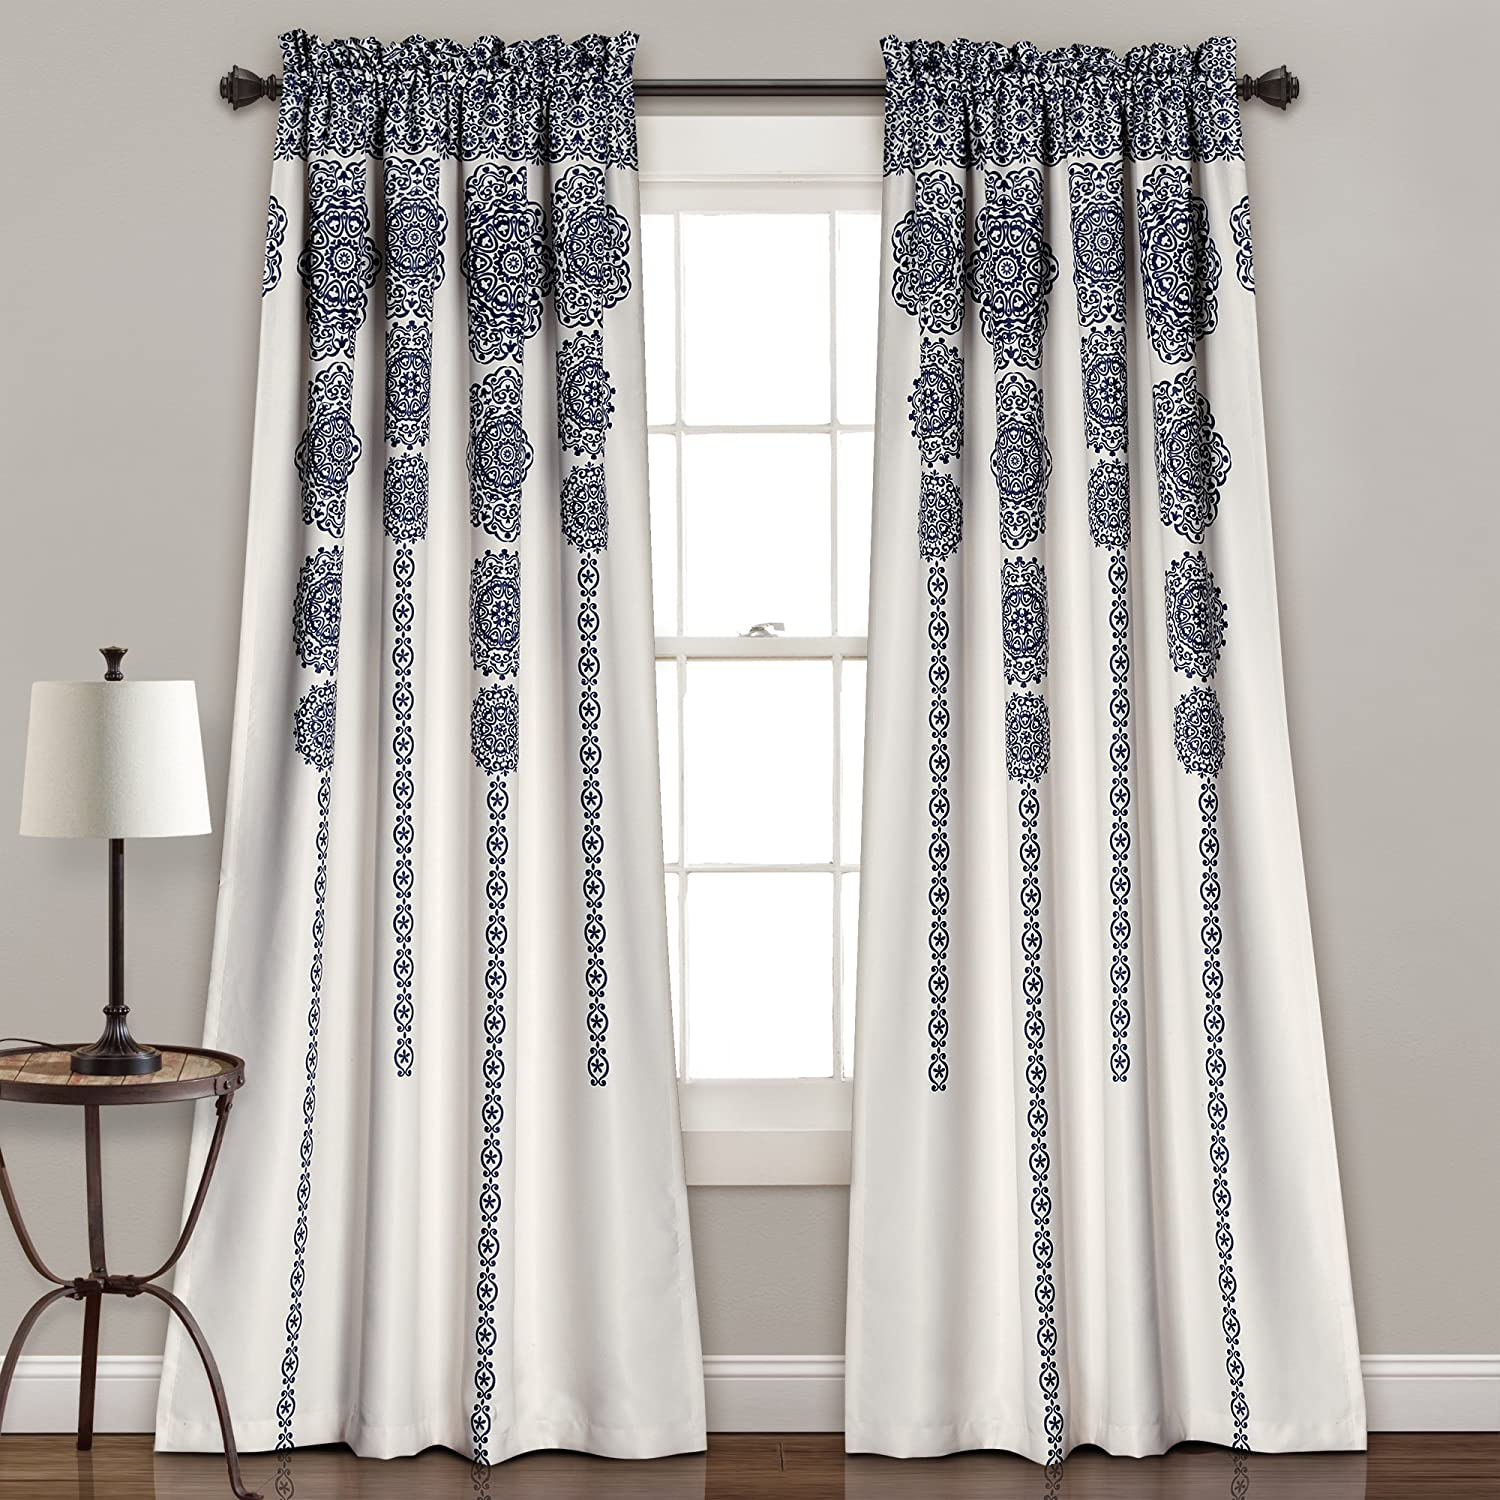 "Lush Decor, Navy Stripe Medallion Curtains | Fabric Mandala Bohemian Damask Print Room Darkening Window Panel Set for Living, Dining, Bedroom (Pair), 84"" x 52 L"